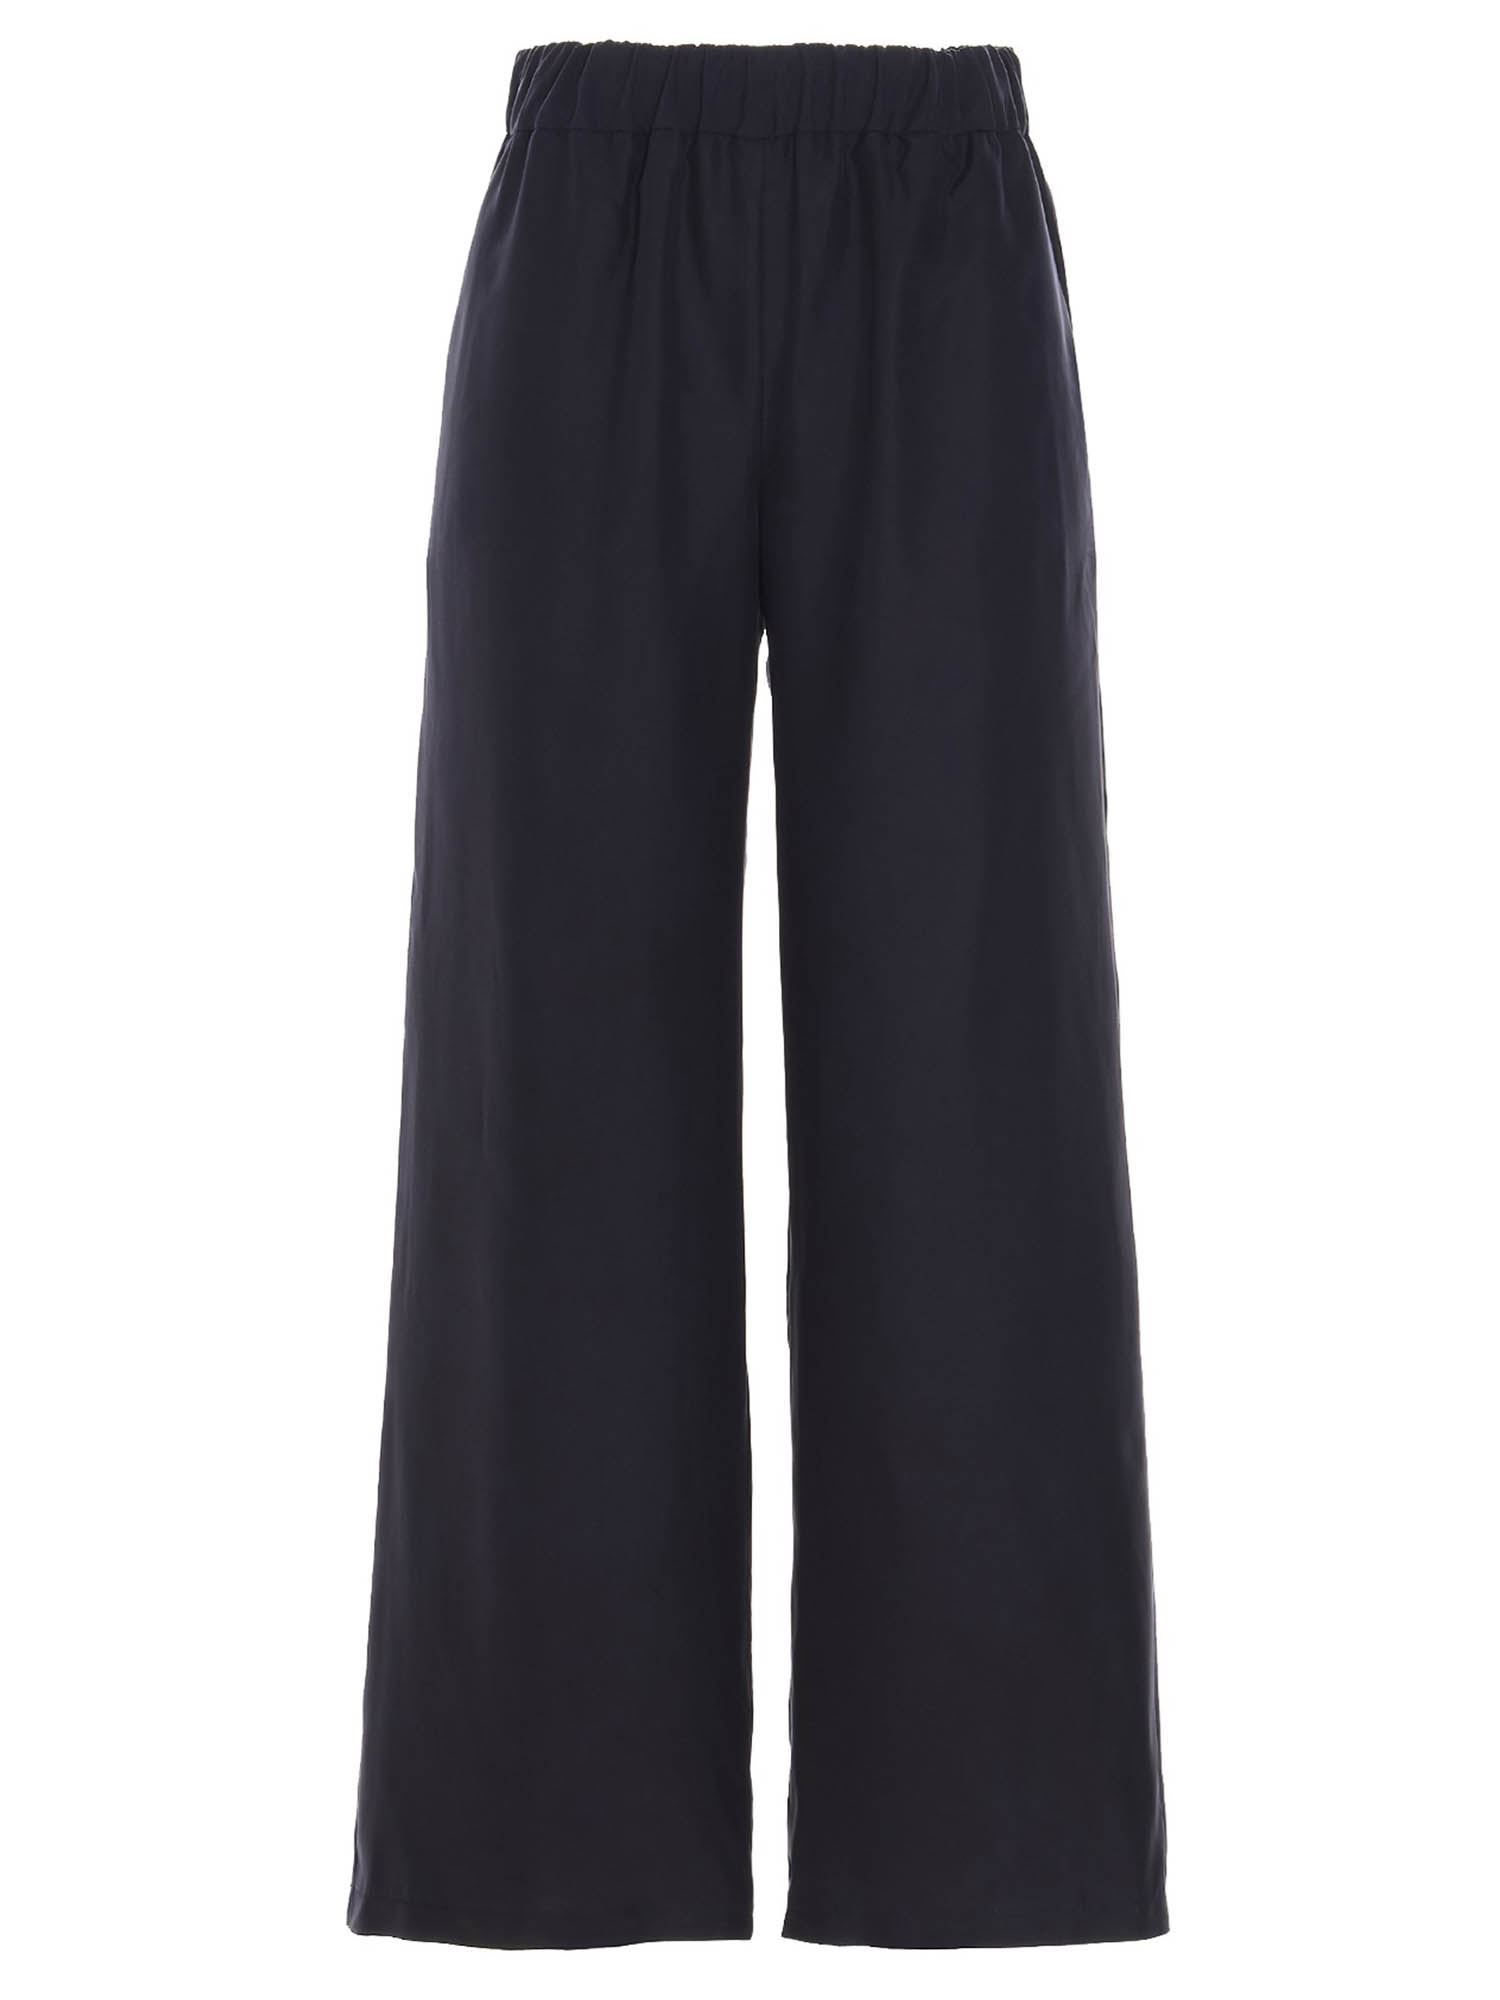 P.a.r.o.s.h. SILK TROUSERS IN BLUE